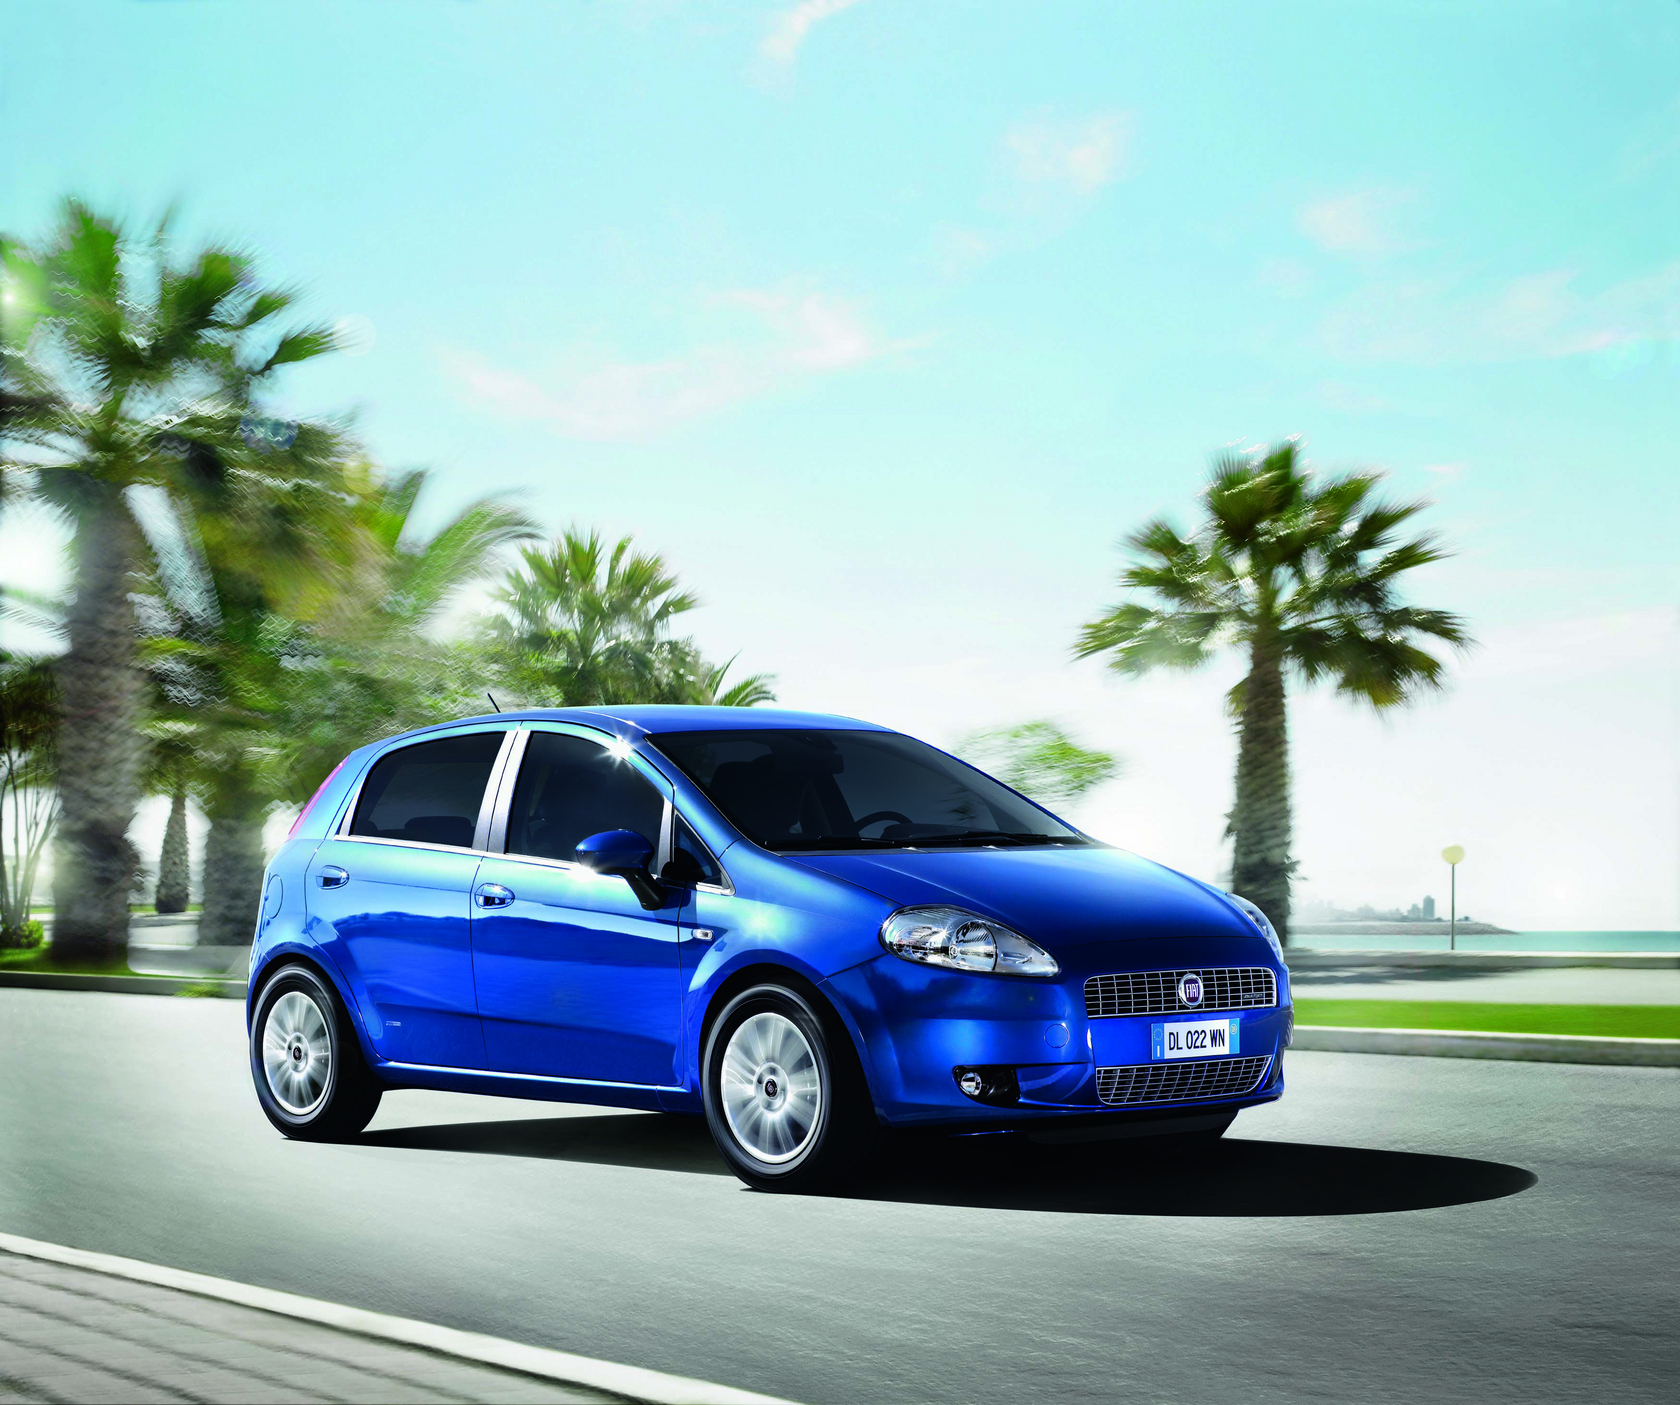 Fiat Grande Punto Auto Wallpapers GroenLicht.be